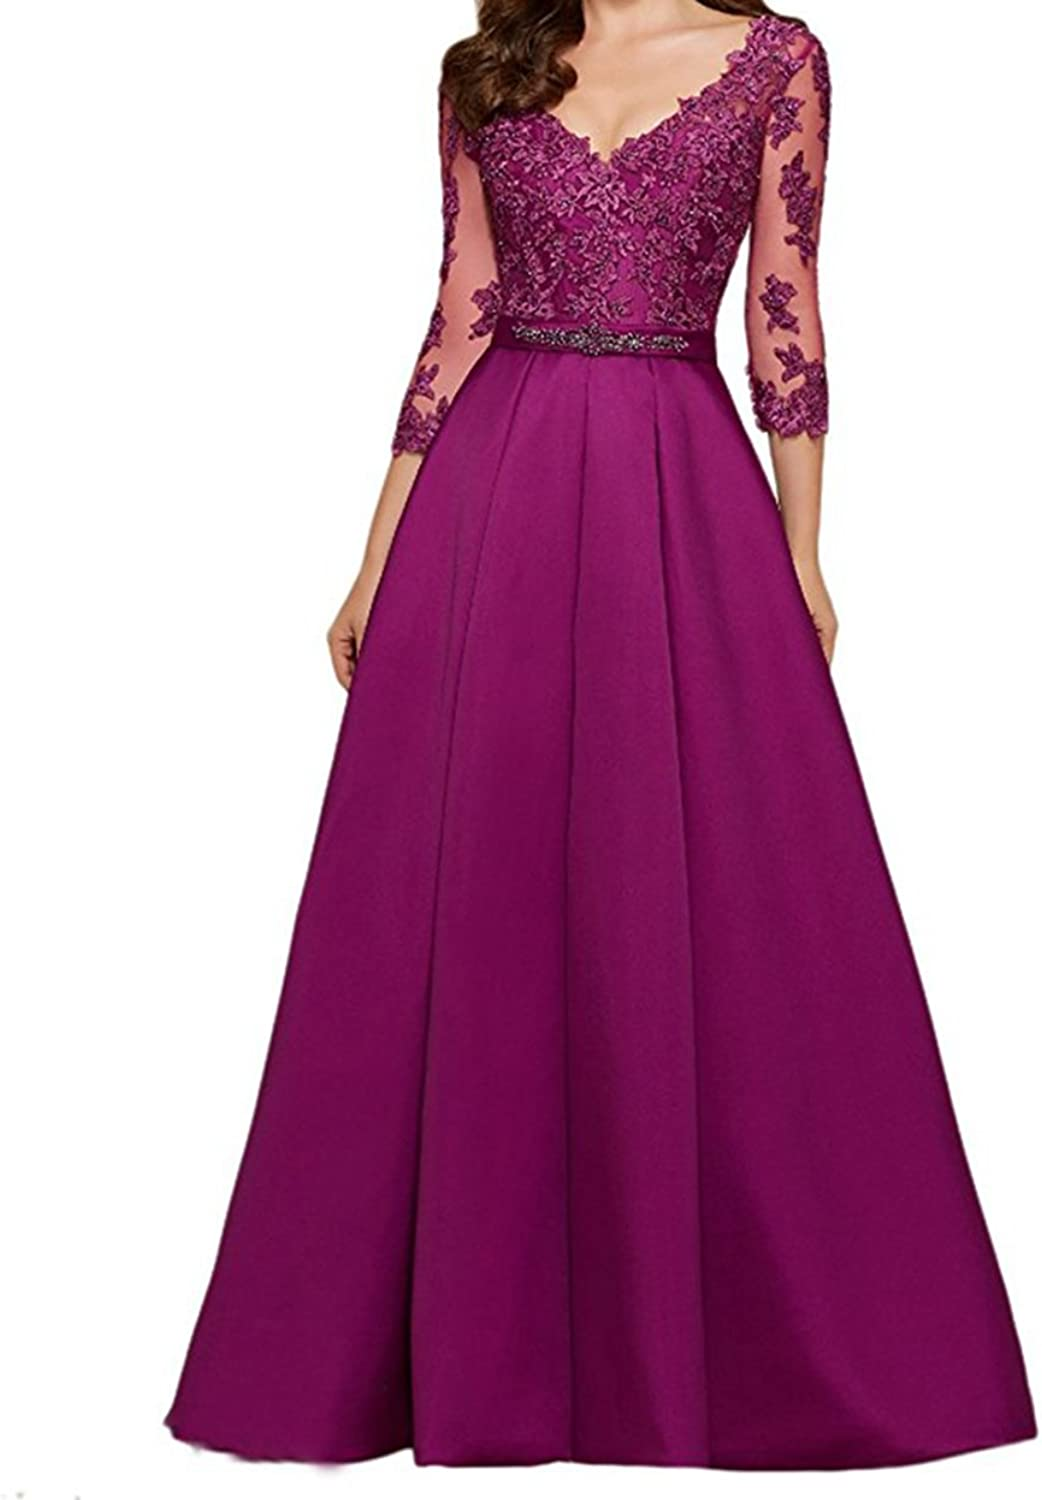 Ynqnfs Women's VNeck 3 4 Sleeves Prom Dress Lace Long Mother of The Bride Dresses